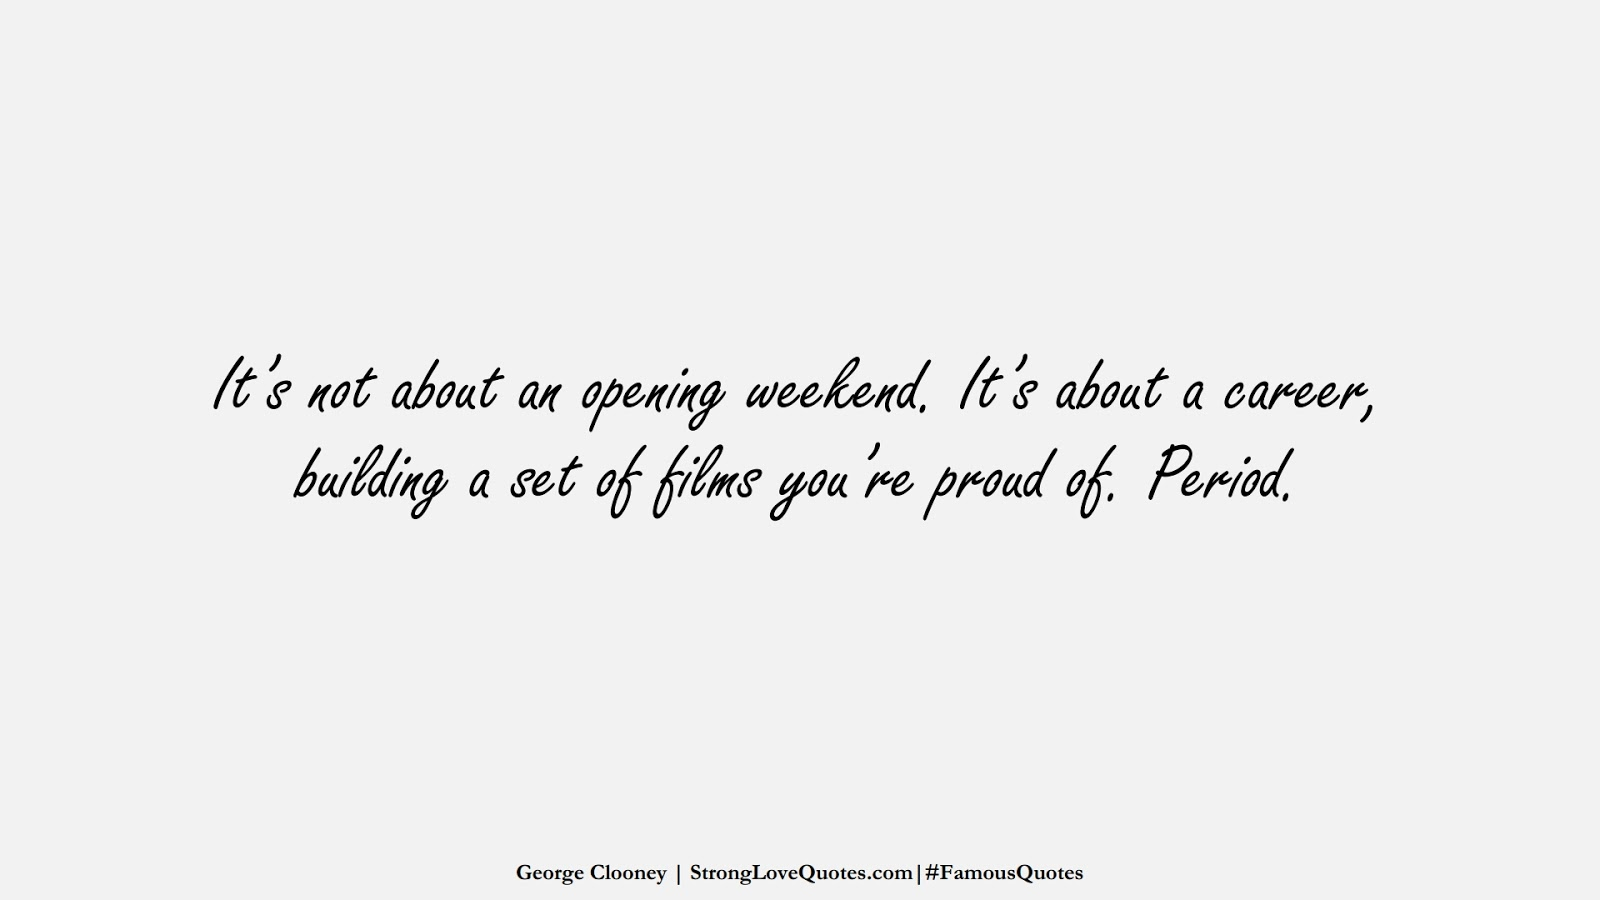 It's not about an opening weekend. It's about a career, building a set of films you're proud of. Period. (George Clooney);  #FamousQuotes